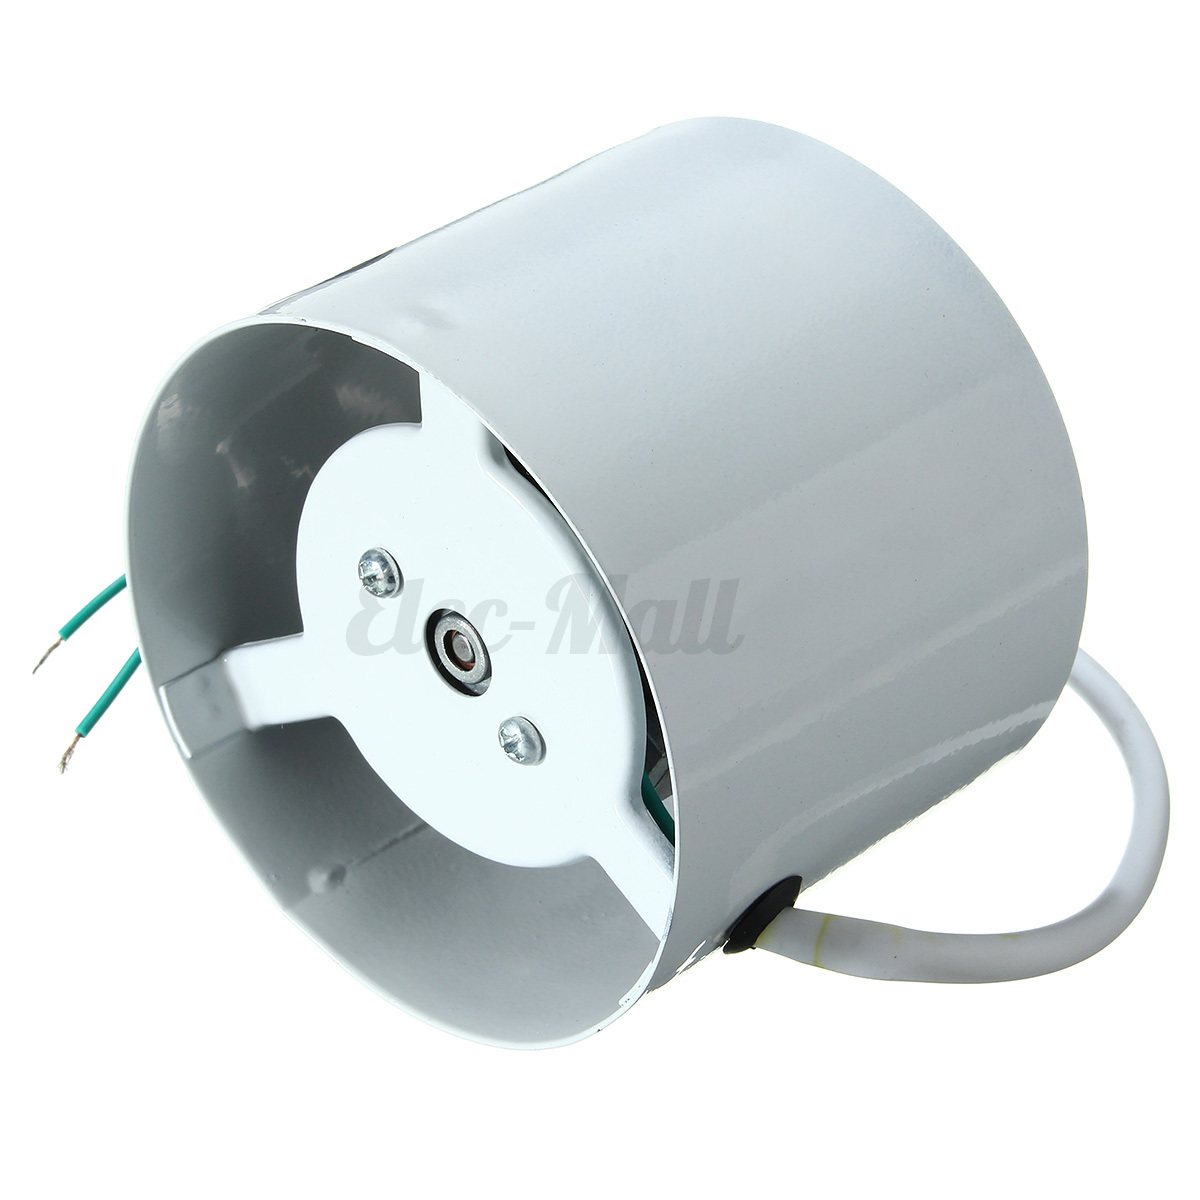 4 Quot Booster Fan Inline Duct Vent Exhaust Intake Blower Air